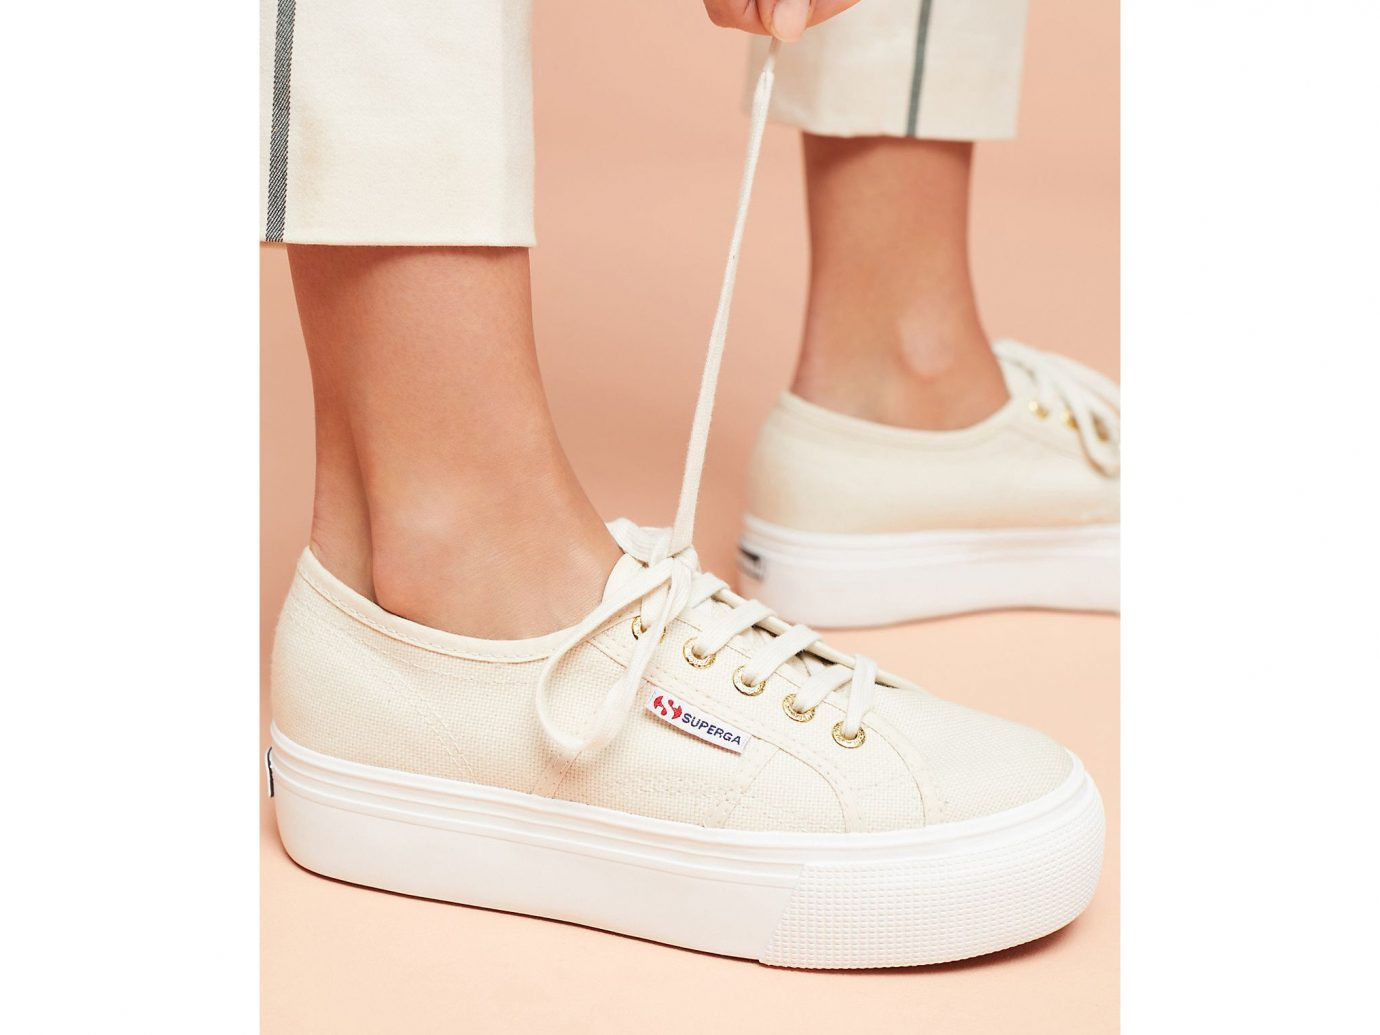 Spring Travel Style + Design Travel Shop footwear person white shoe sneakers product outdoor shoe product design beige walking shoe posing